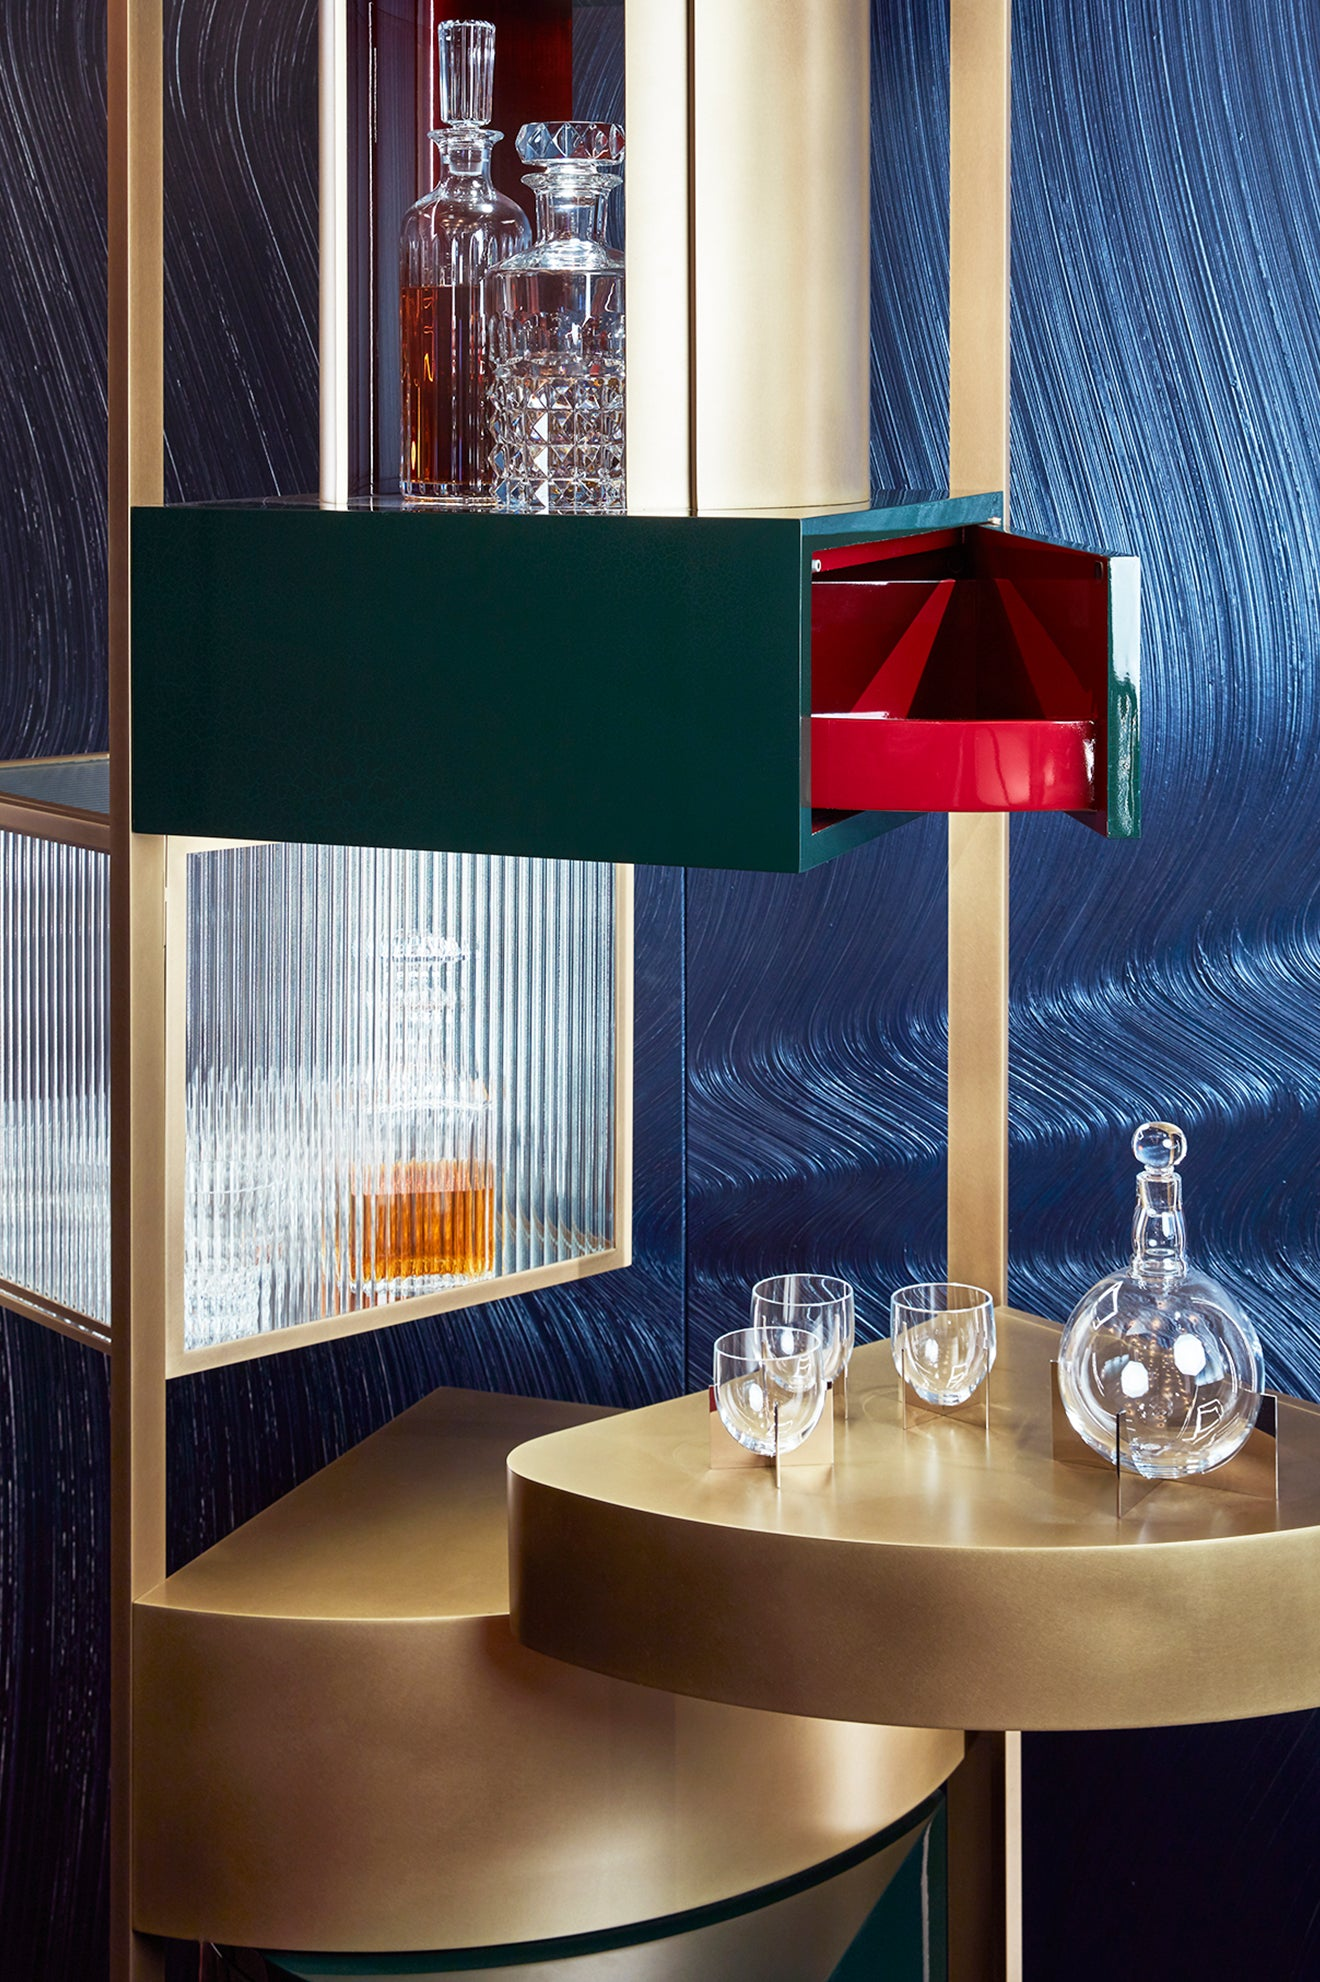 Humbert poyet architecture design the nocturnal smoking room for maison et objet